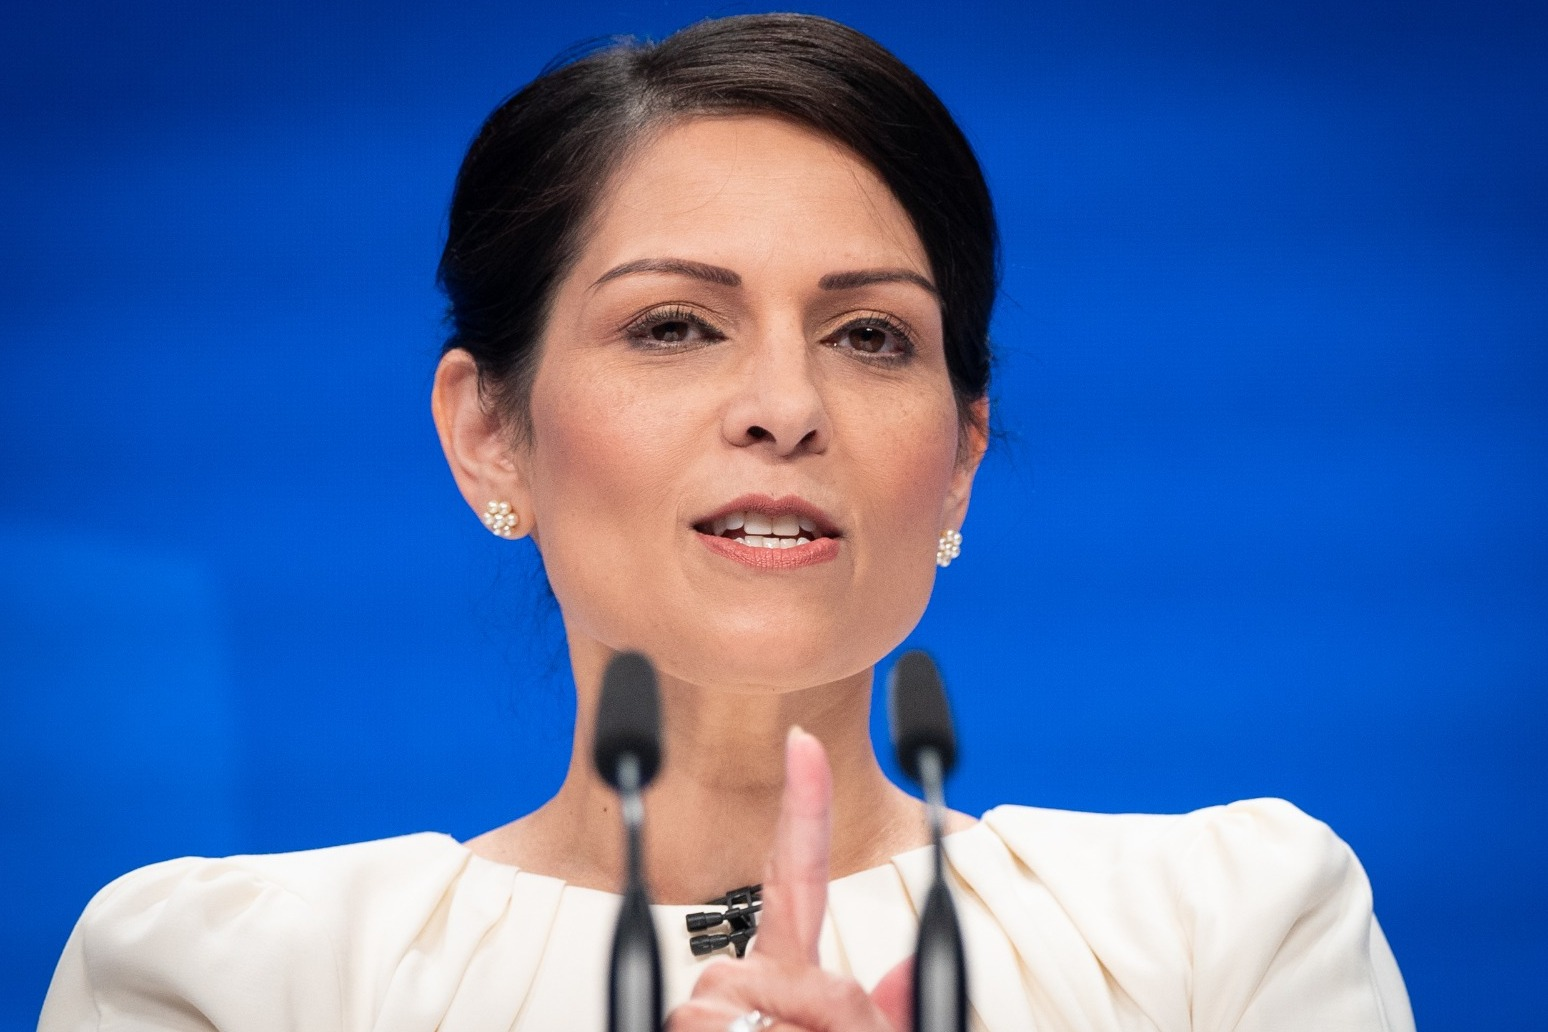 Priti Patel urged to tackle male violence after backing phone service for women